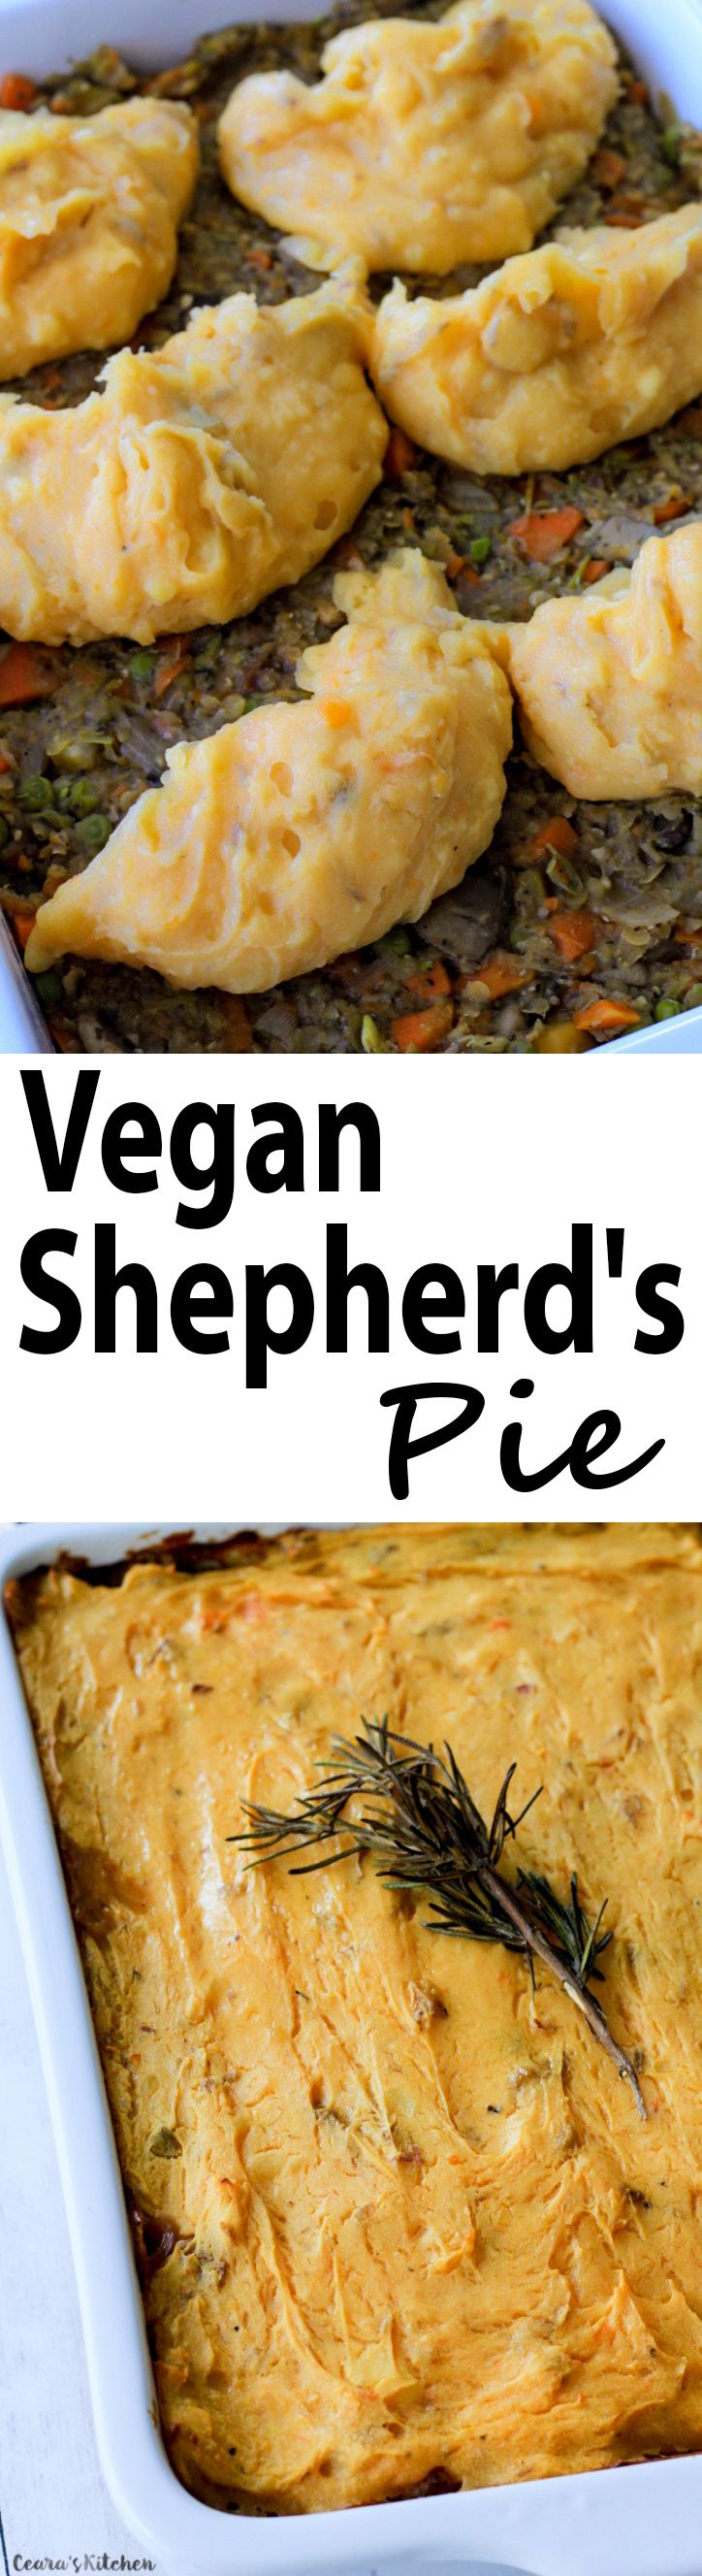 Vegan Shepherd's Pie! A hearty vegetable-lentil mixture, topped off with a thick layer of comforting mashed potatoes and baked until golden brown.